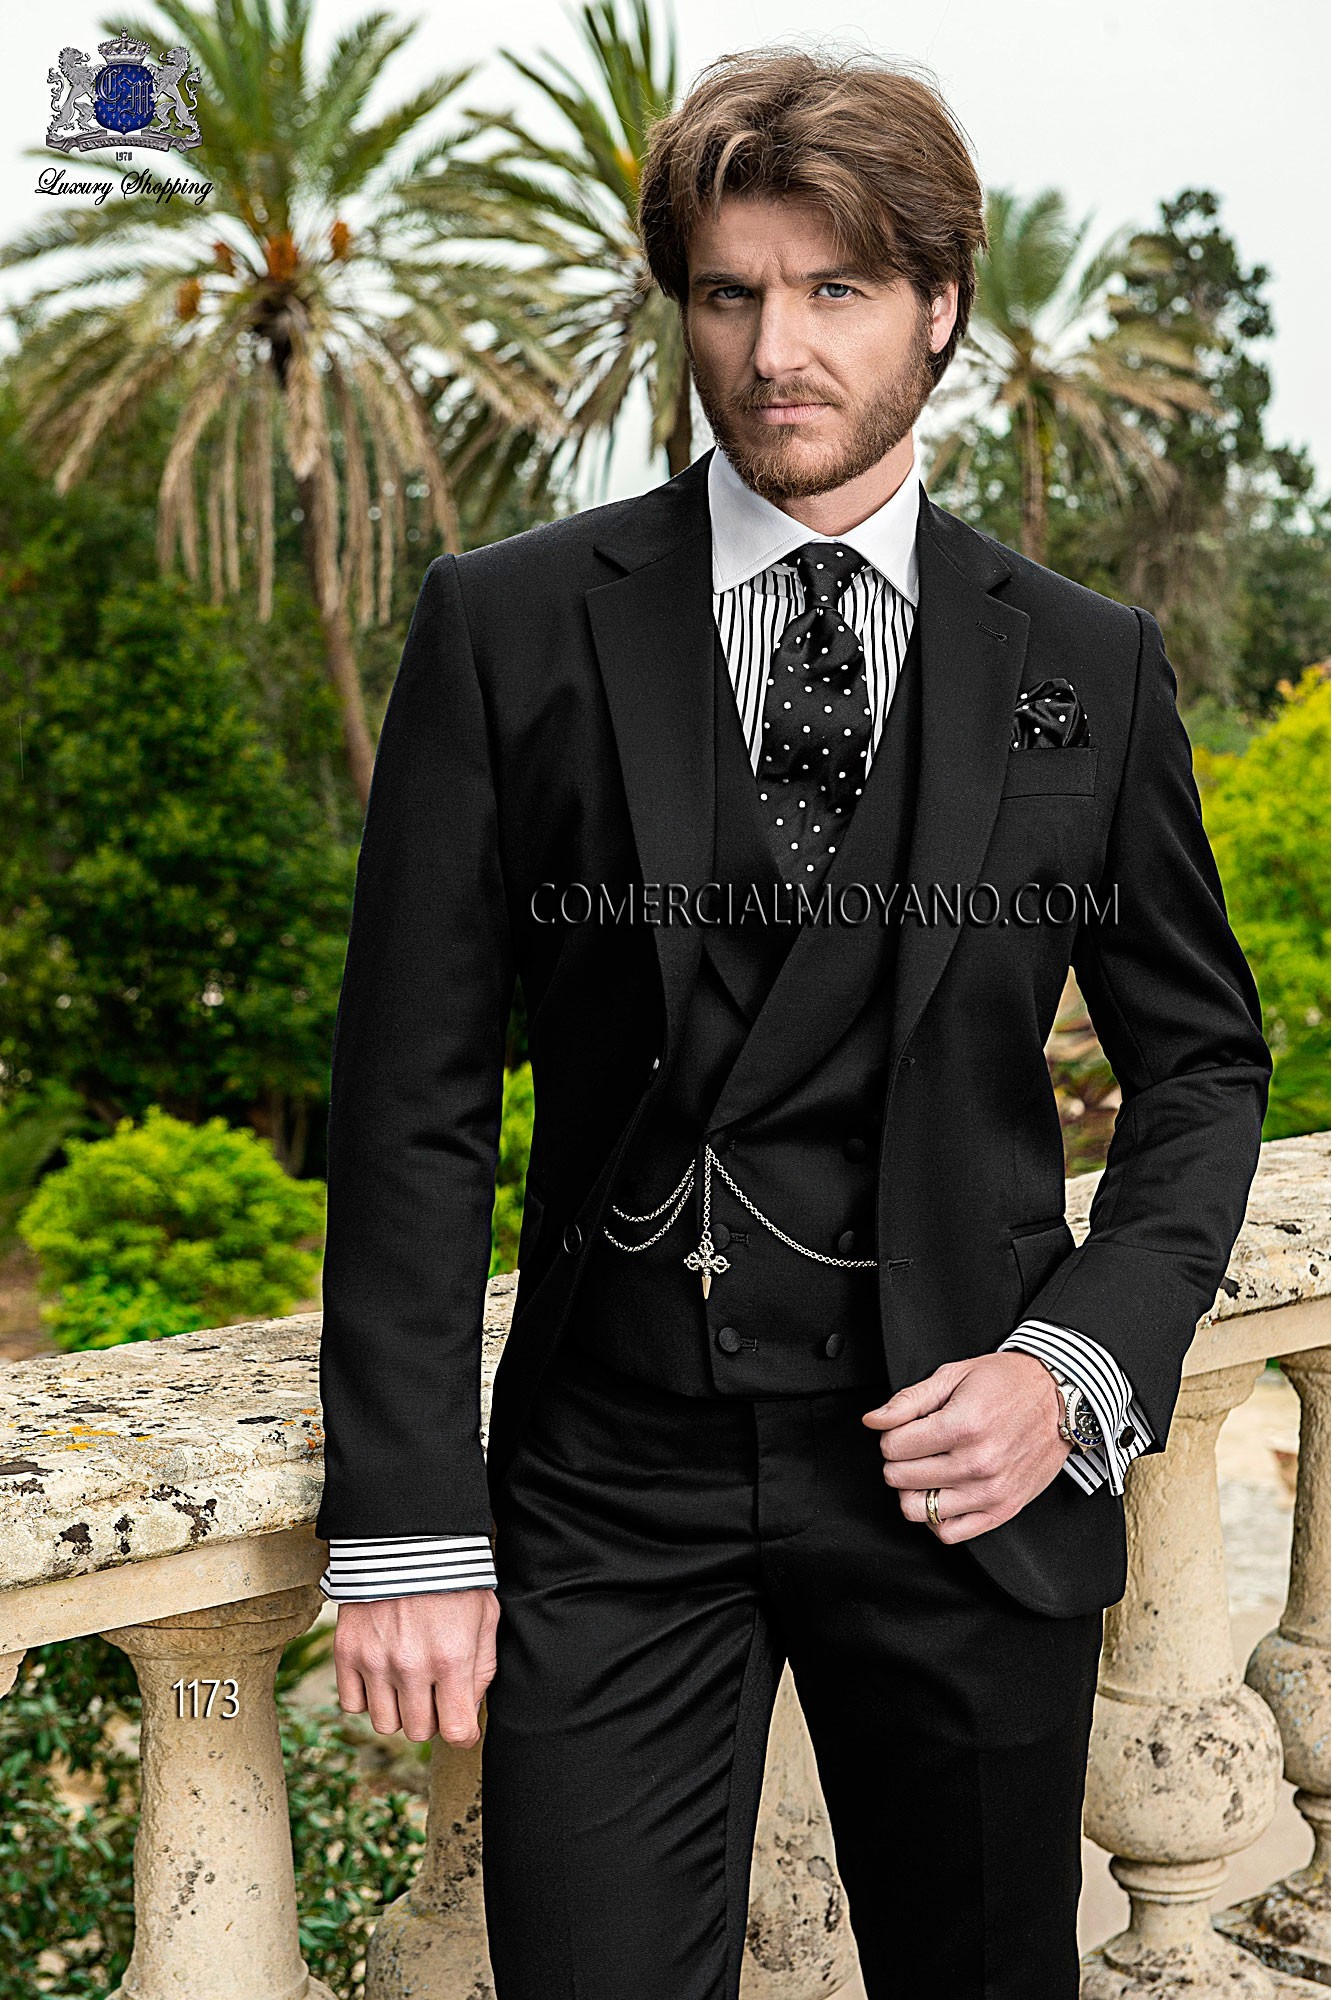 Gentleman black men wedding suit model 1173 Ottavio Nuccio Gala